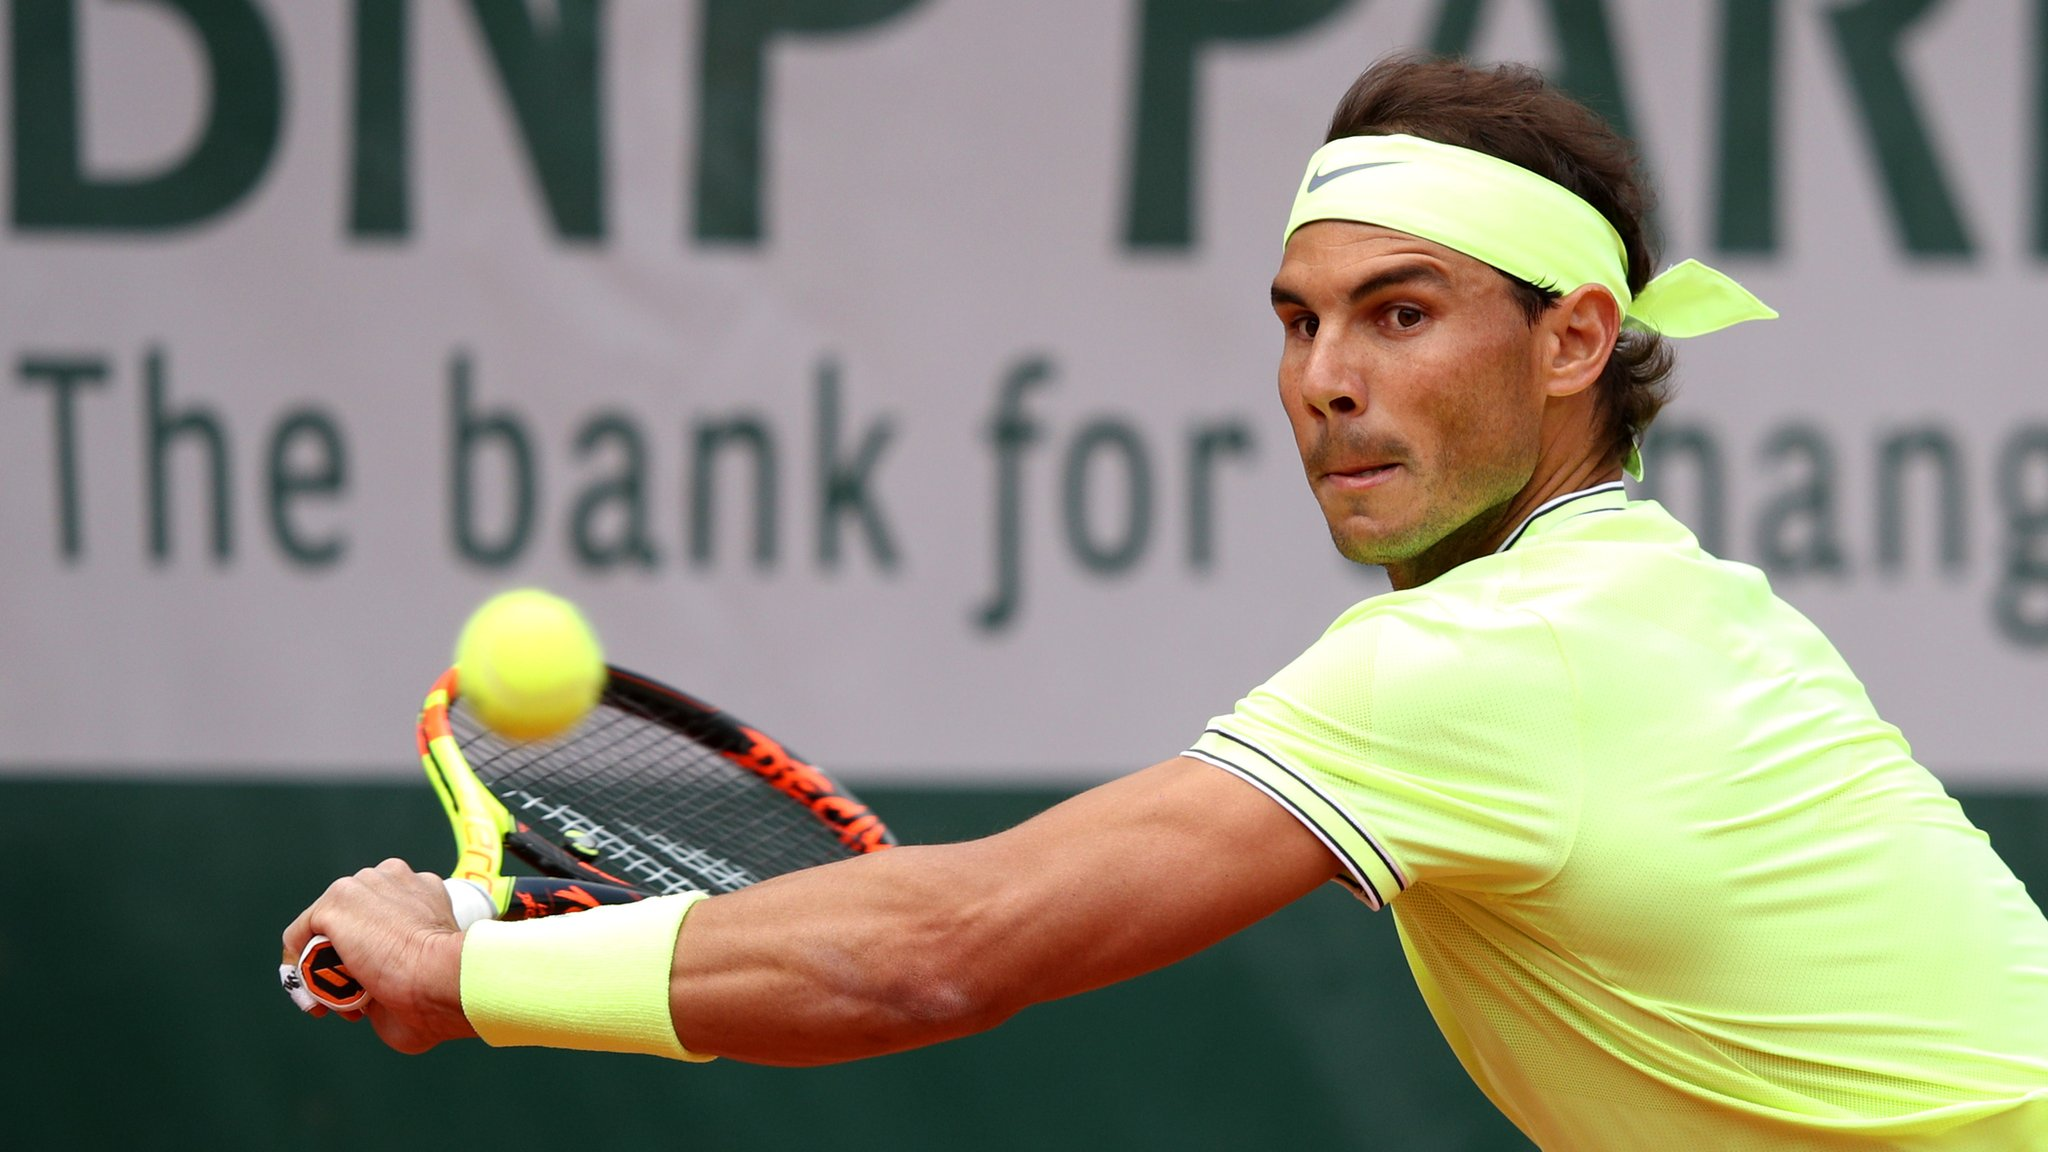 Nadal beats Hanfmann to move in French Open second round